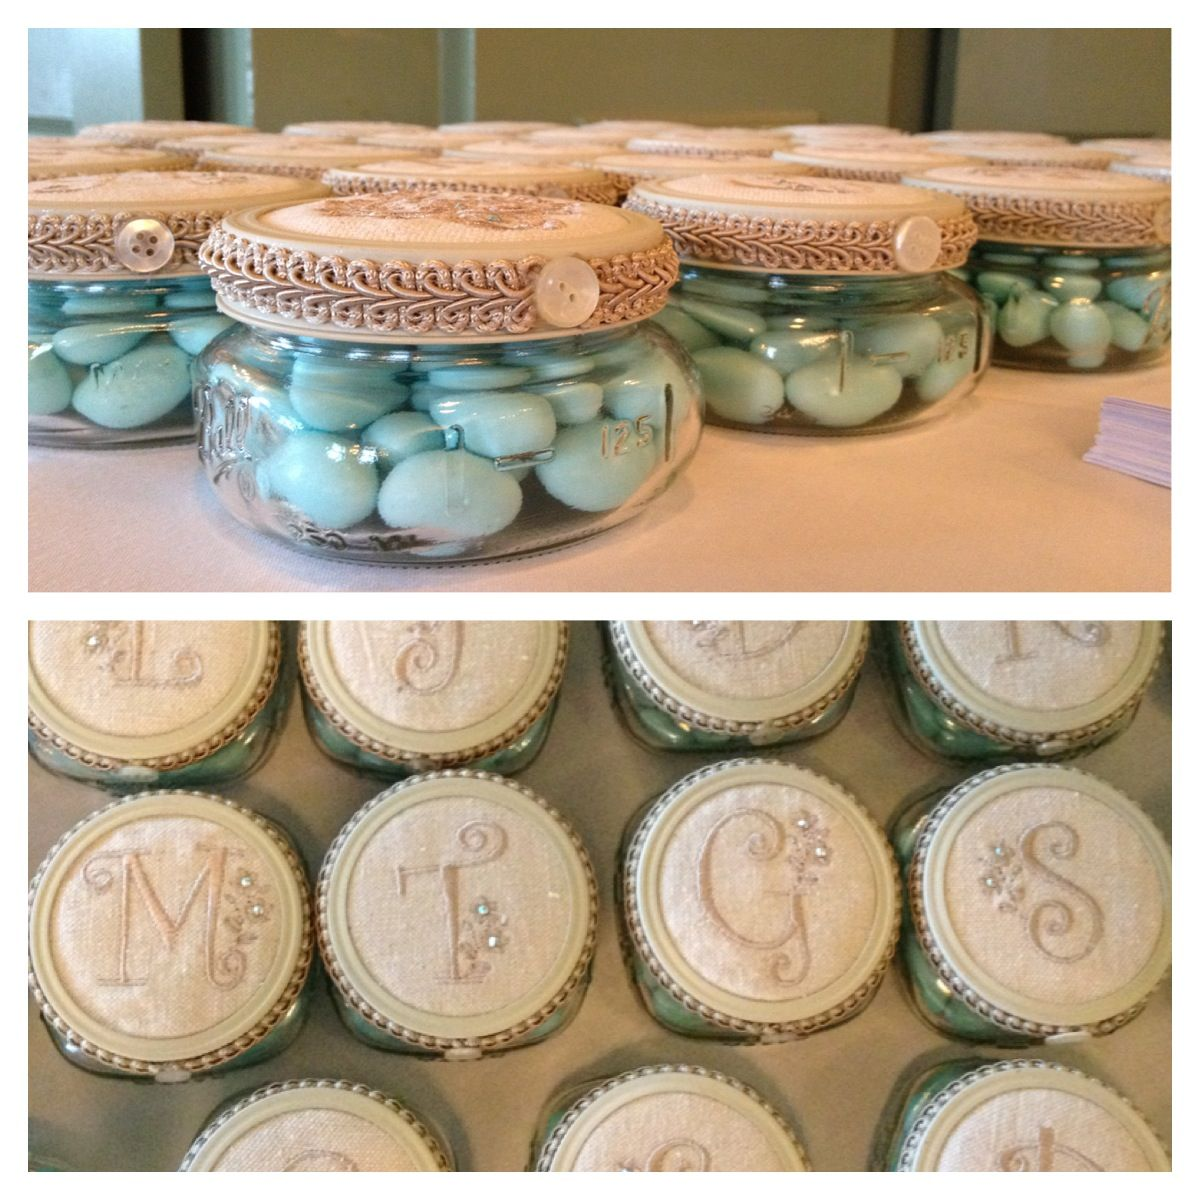 Bridal shower gifts with personalized lid per guests